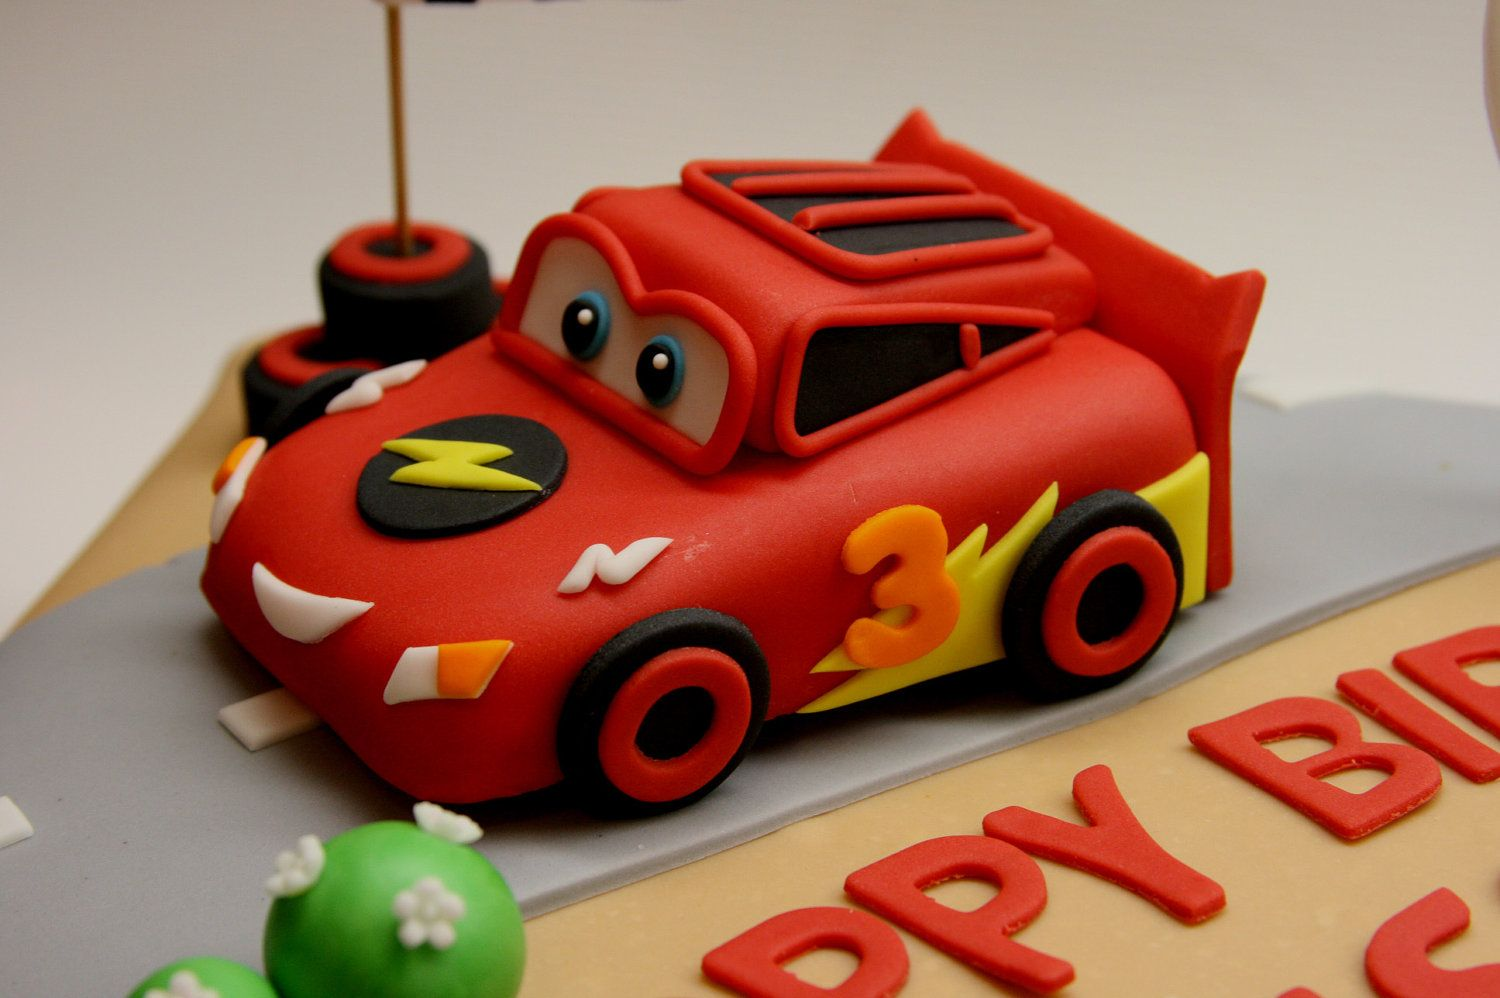 Mcqueen Car Cake Decoration : 1930 Illustration By Clara M. Burd From A Child s Garden ...